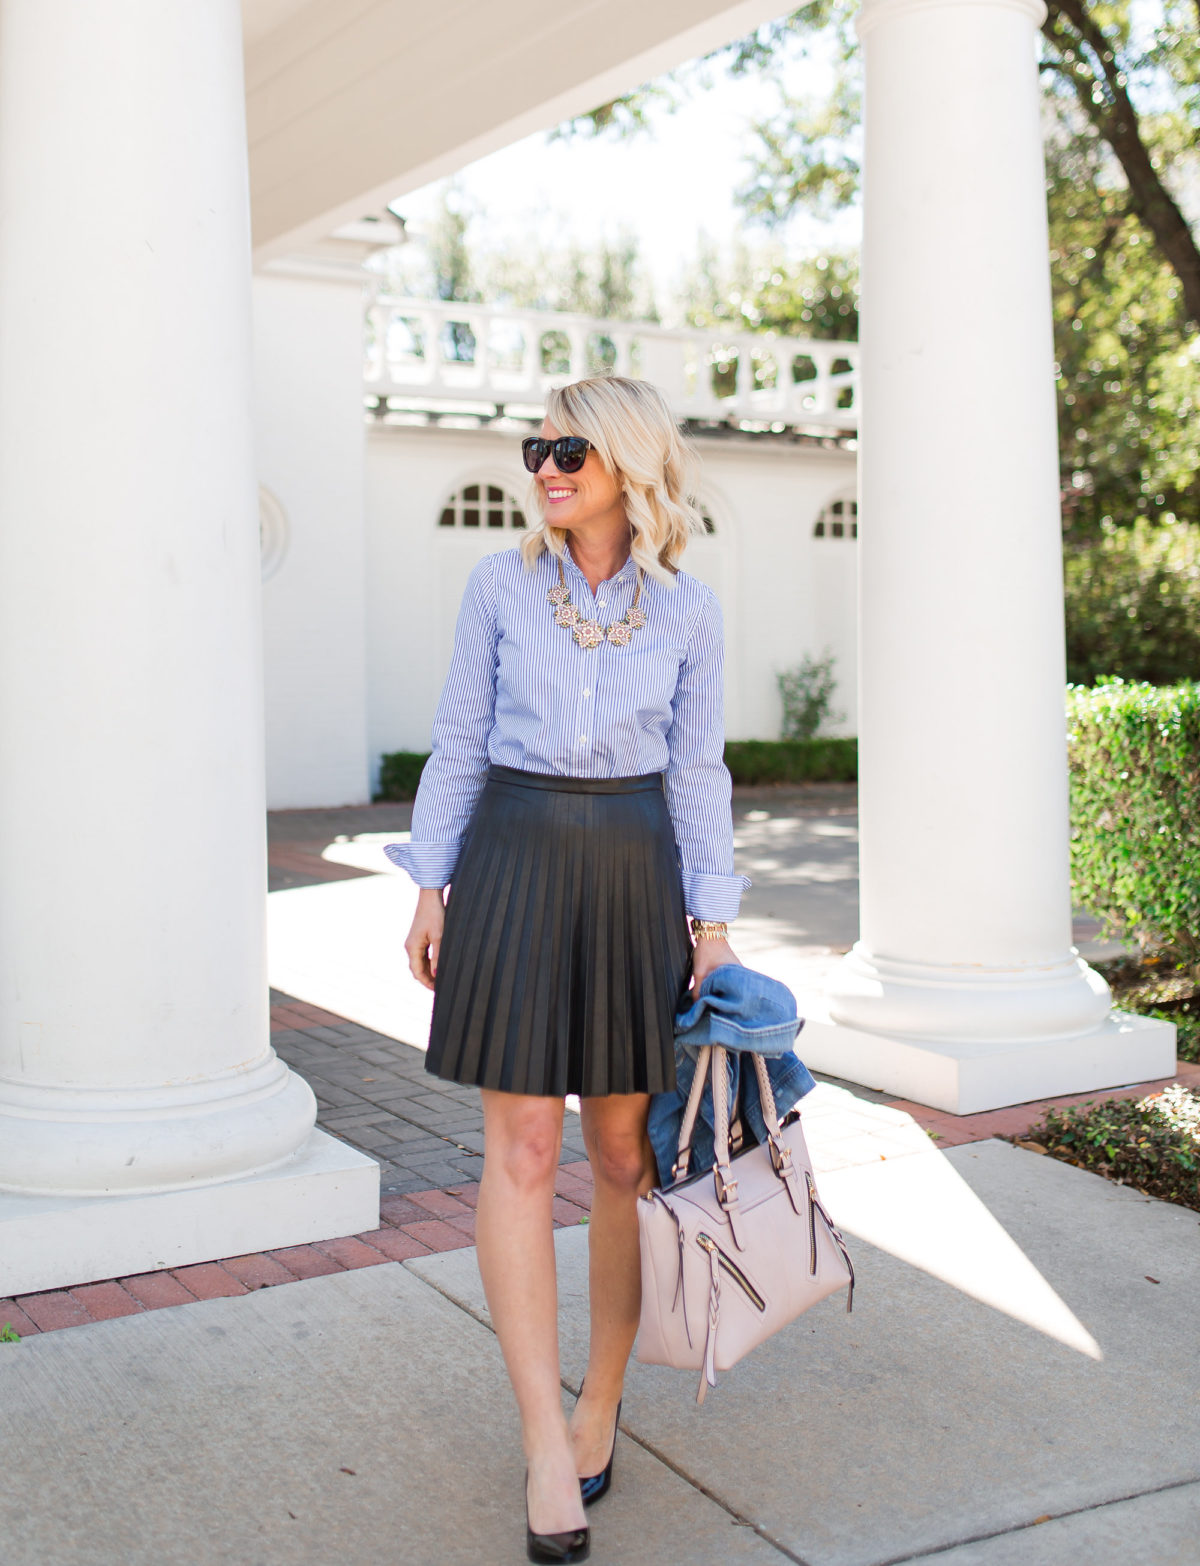 Early Spring | Preppy Pleats & Stripes